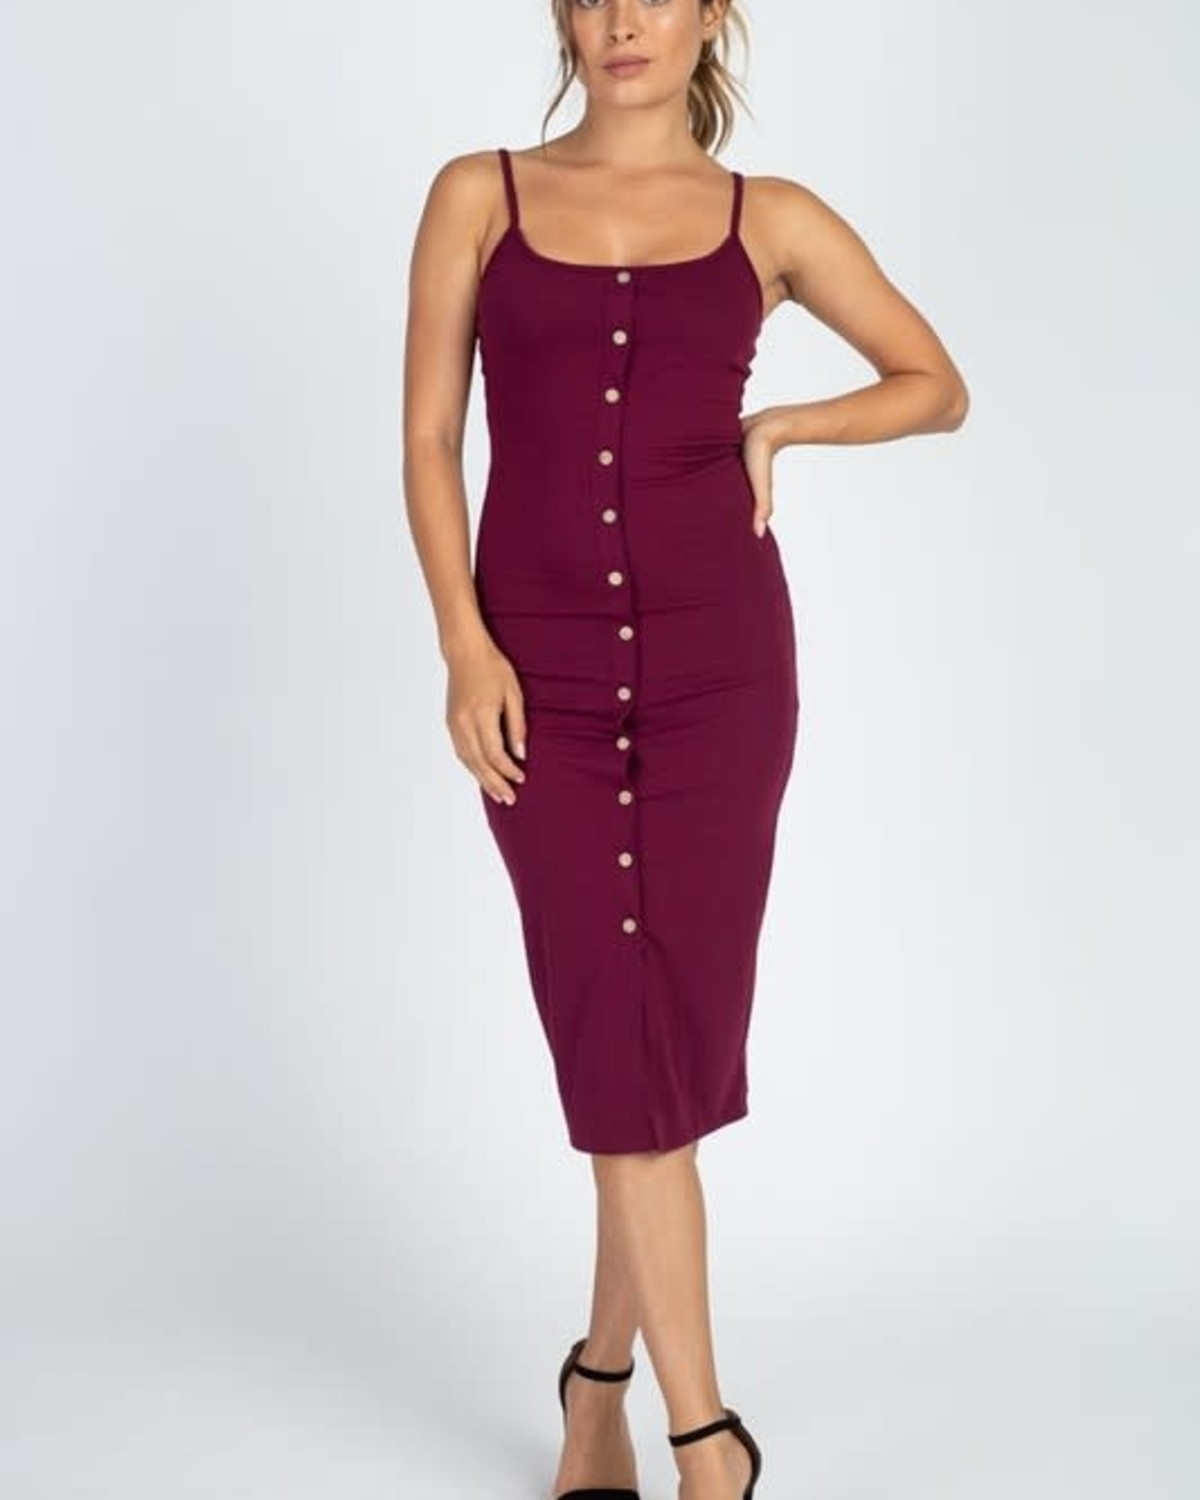 Totally Snapped Bodycon Dress Burgundy